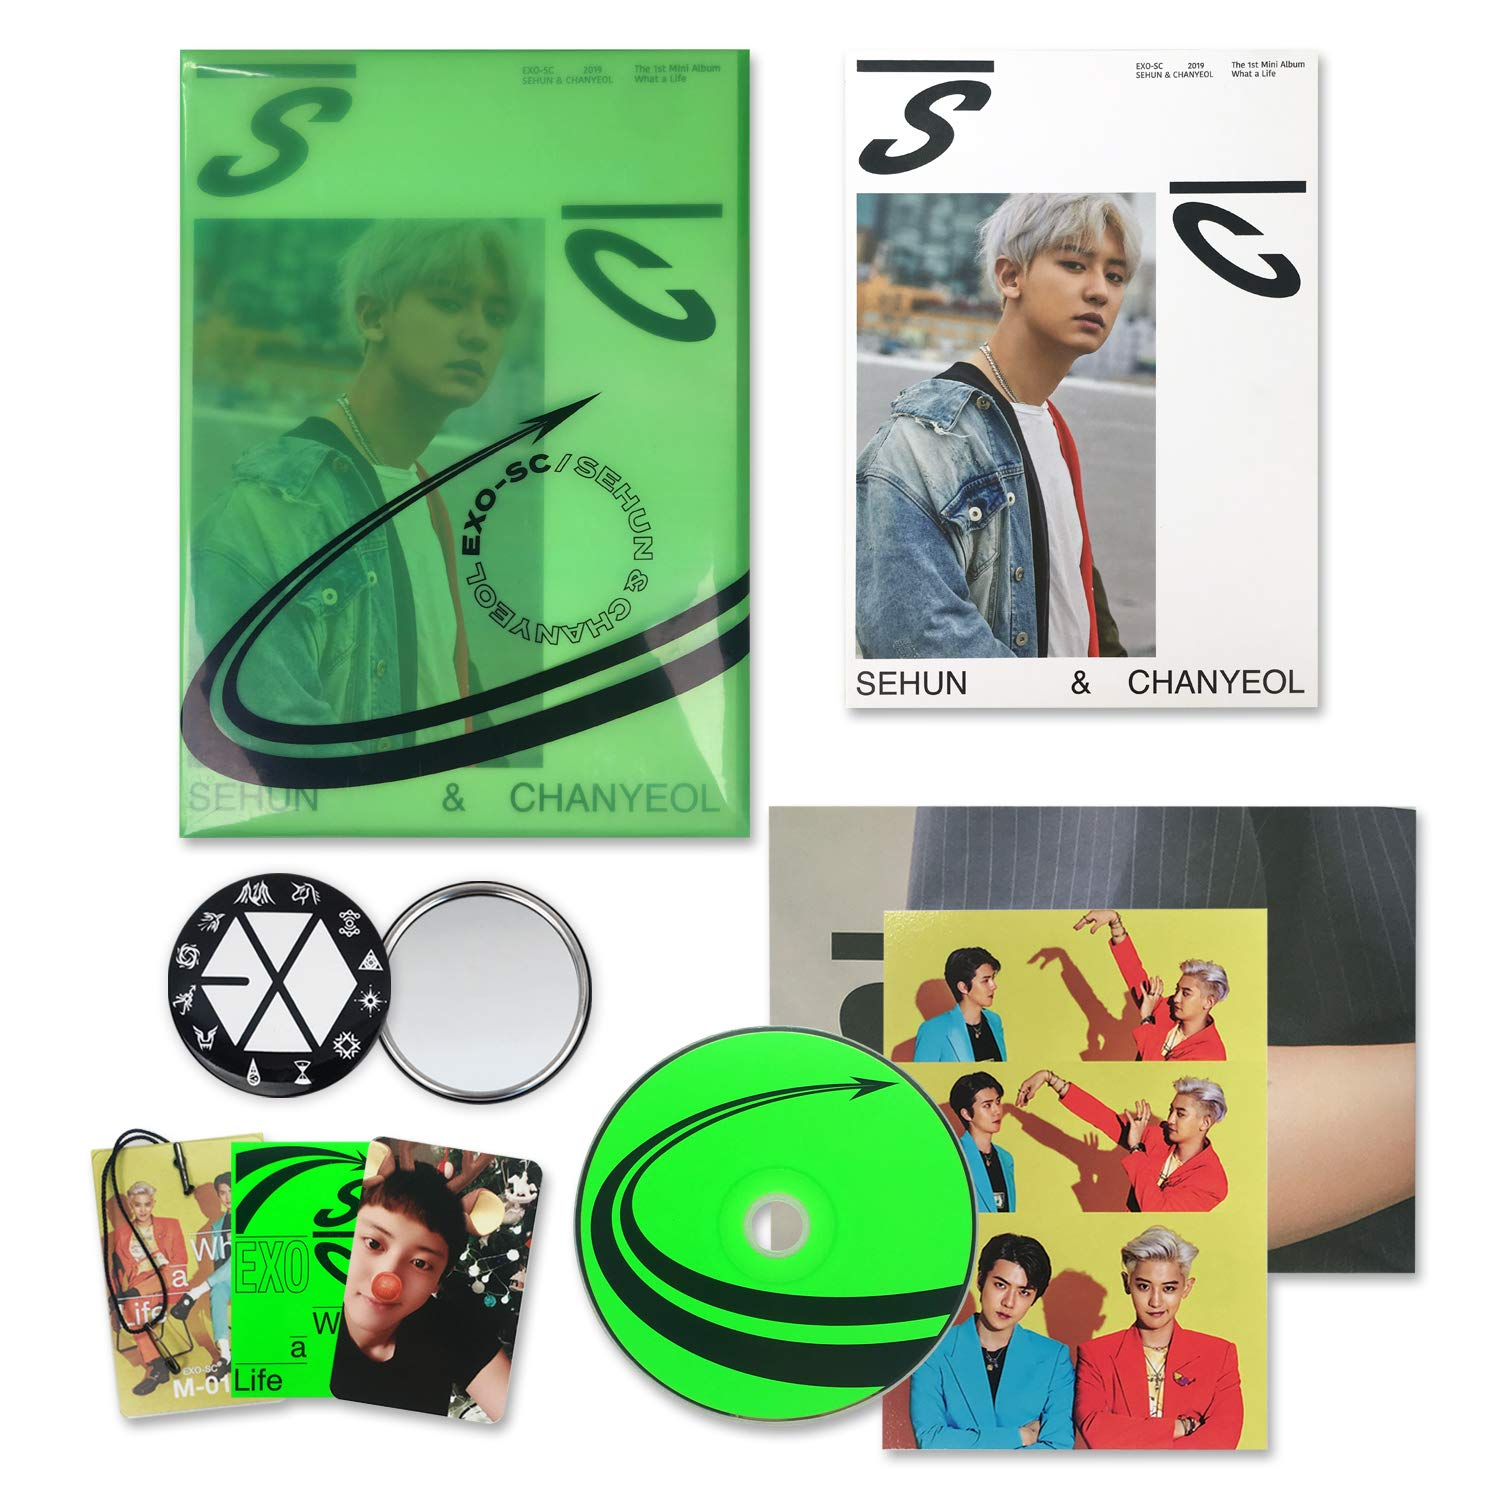 Exo Sc Exo Sc 1st Mini Album What A Life Sc2019 G Ver Cd Booklet Folded Poster On Pack Photocard Name Tag Sticker Postcard Official Poster Free Gift Music